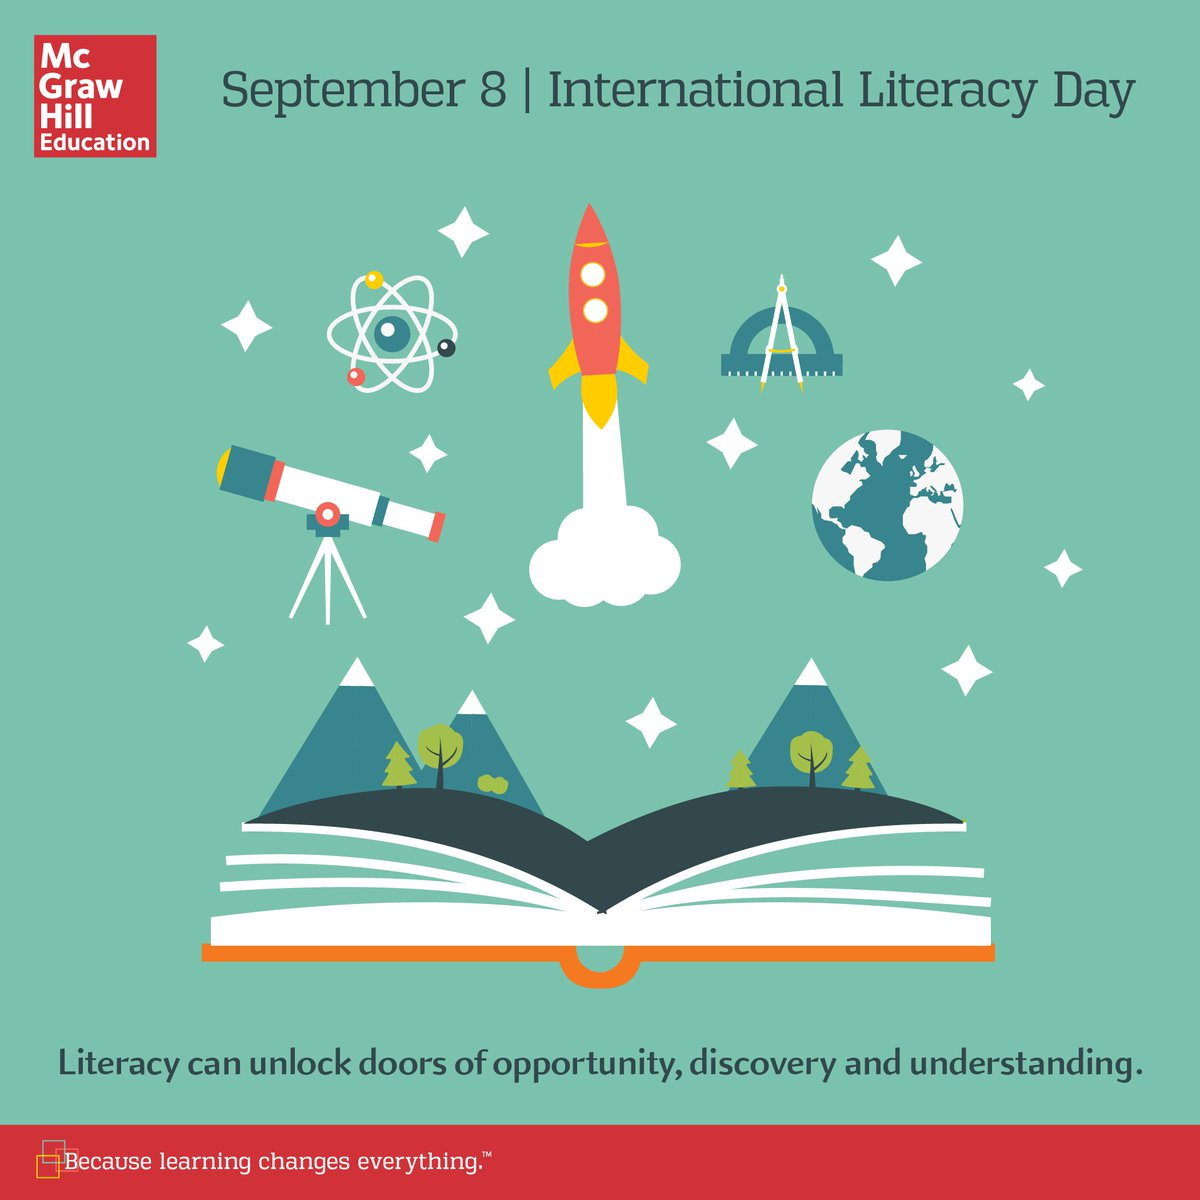 Literacy can unlock doors of opportunity, discovery & understanding. Happy #InternationalLiteracyDay! #edchat https://t.co/vDlcxVPAOI